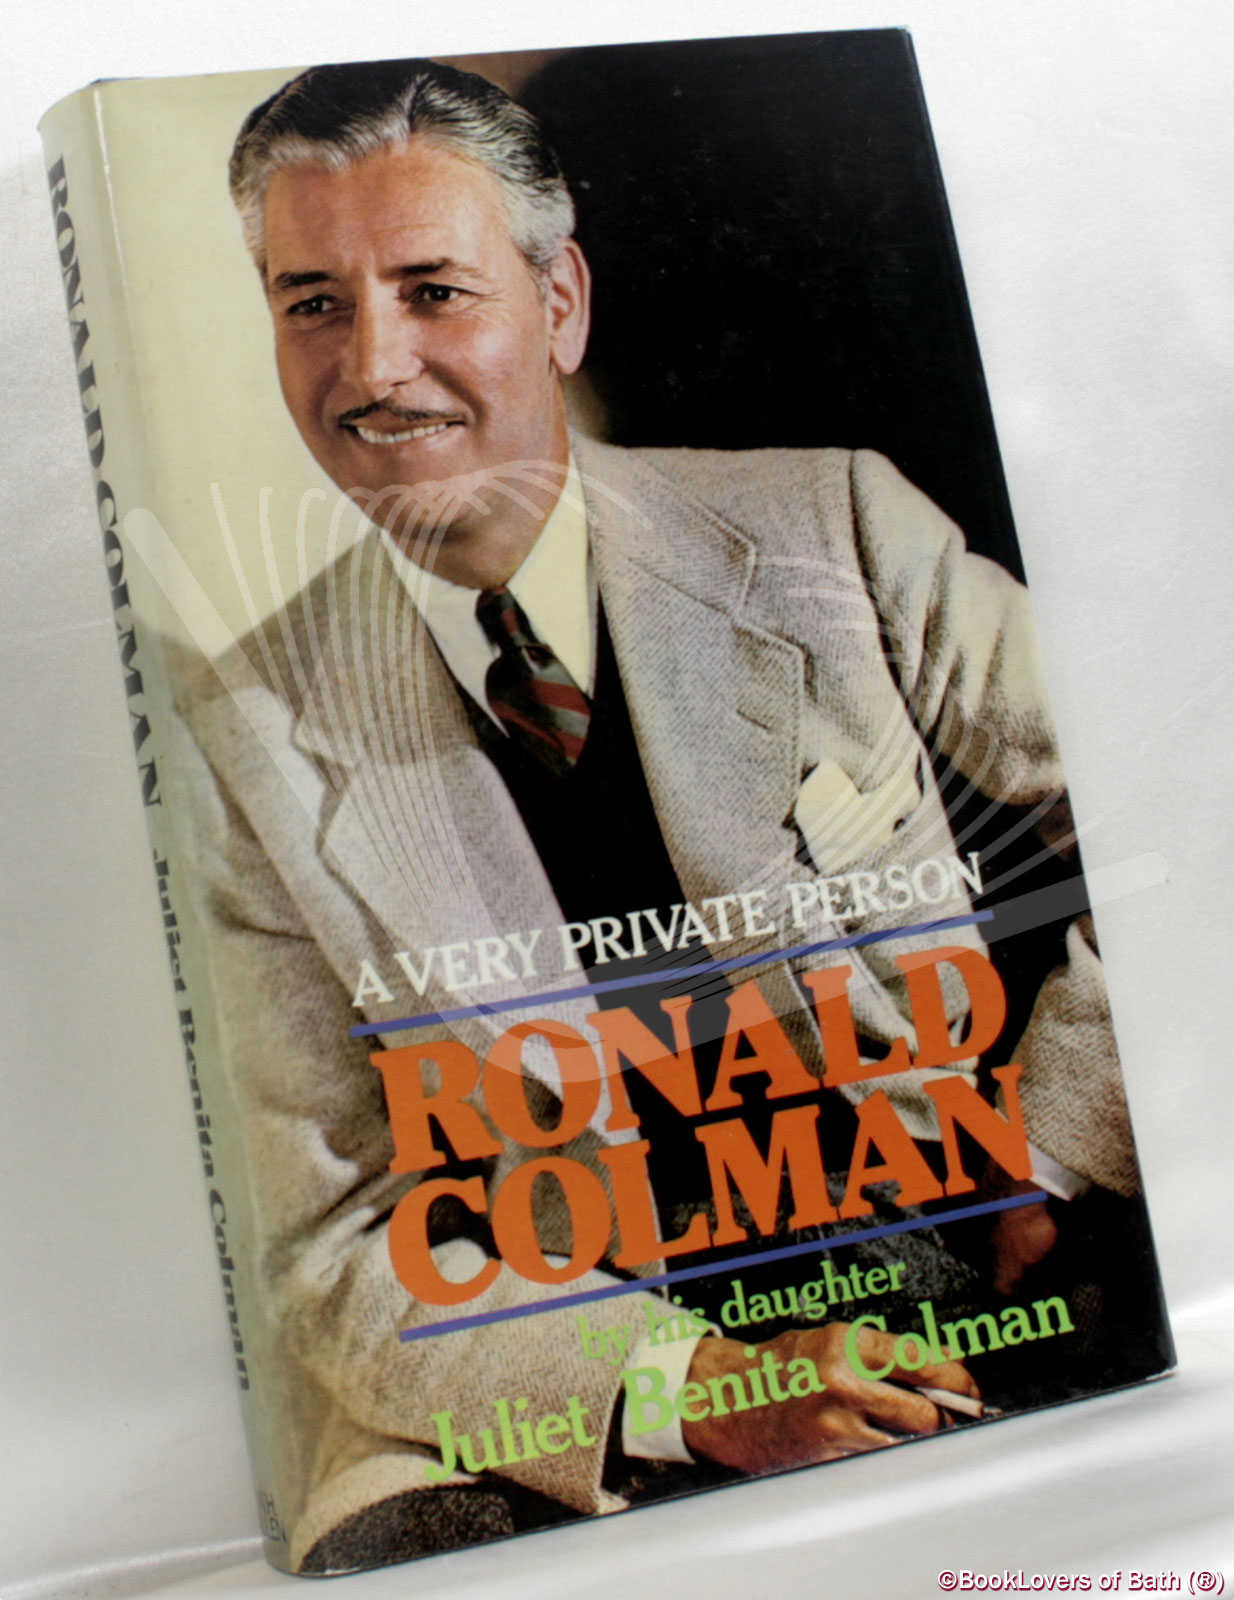 Ronald Colman: A Very Private Person: A Biography - Juliet Benita Colman